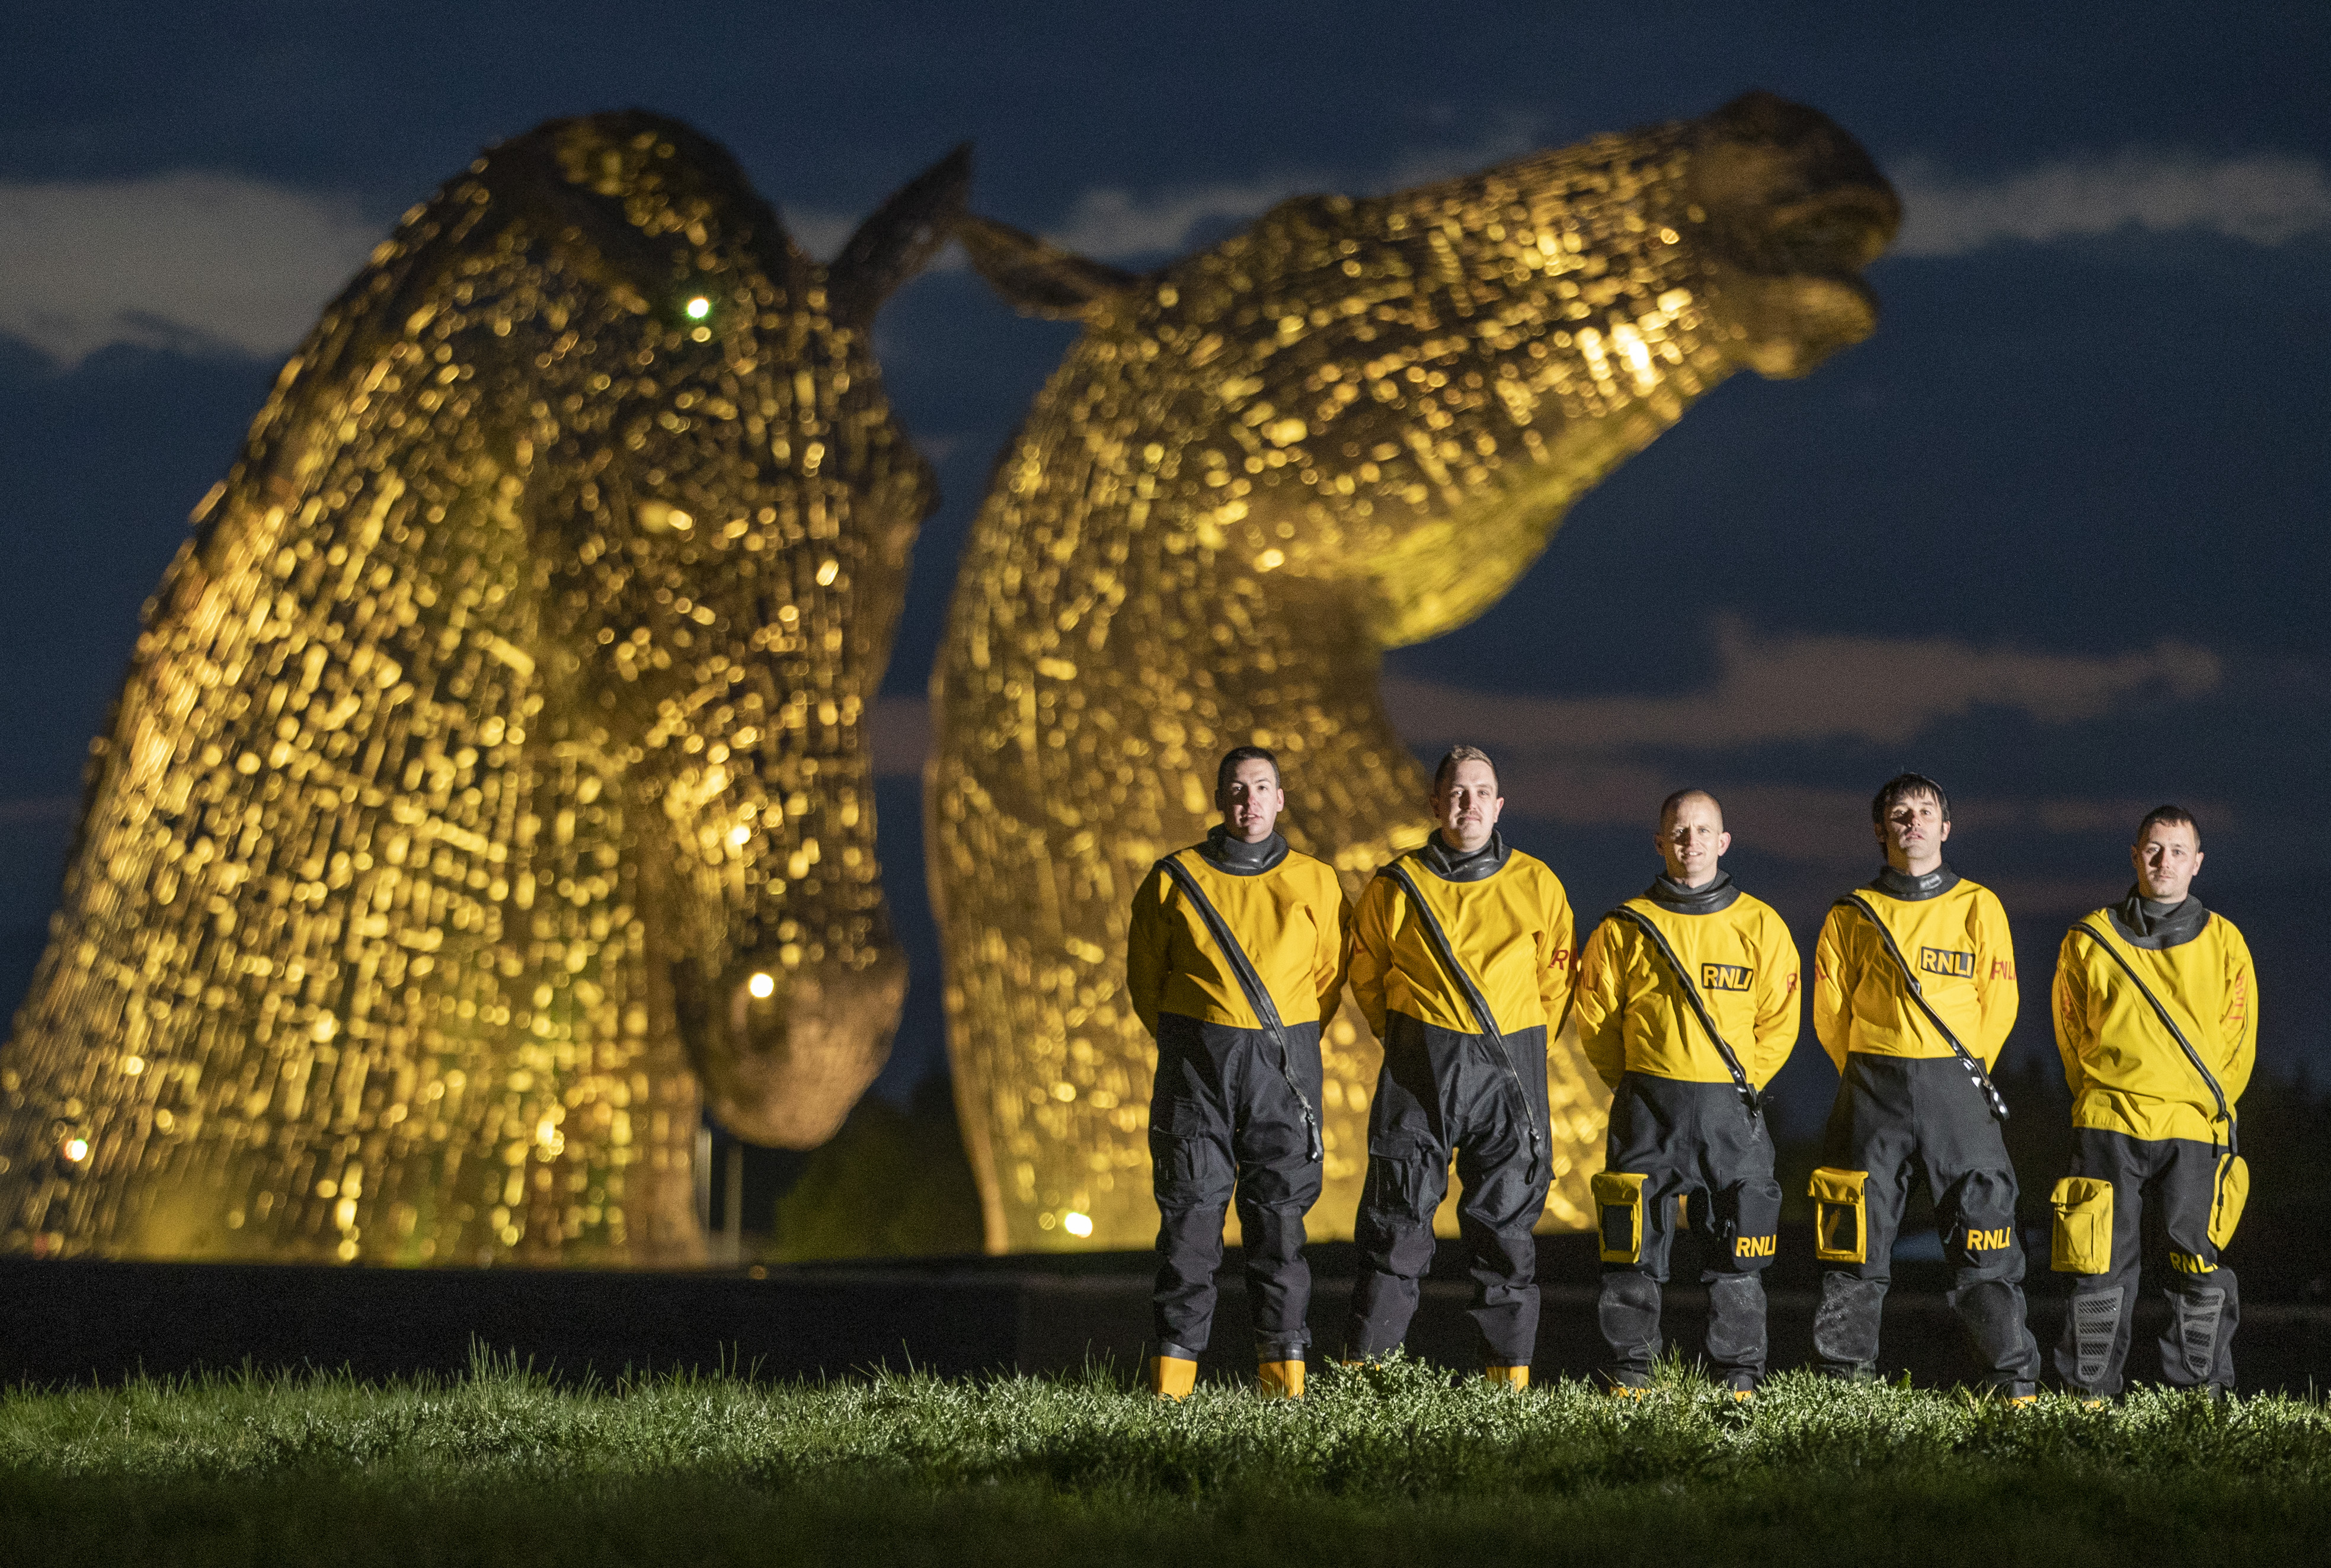 RNLI volunteer crew from Queensferry and Kinghorn collect in front of The Kelpies as they light up yellow for Mayday